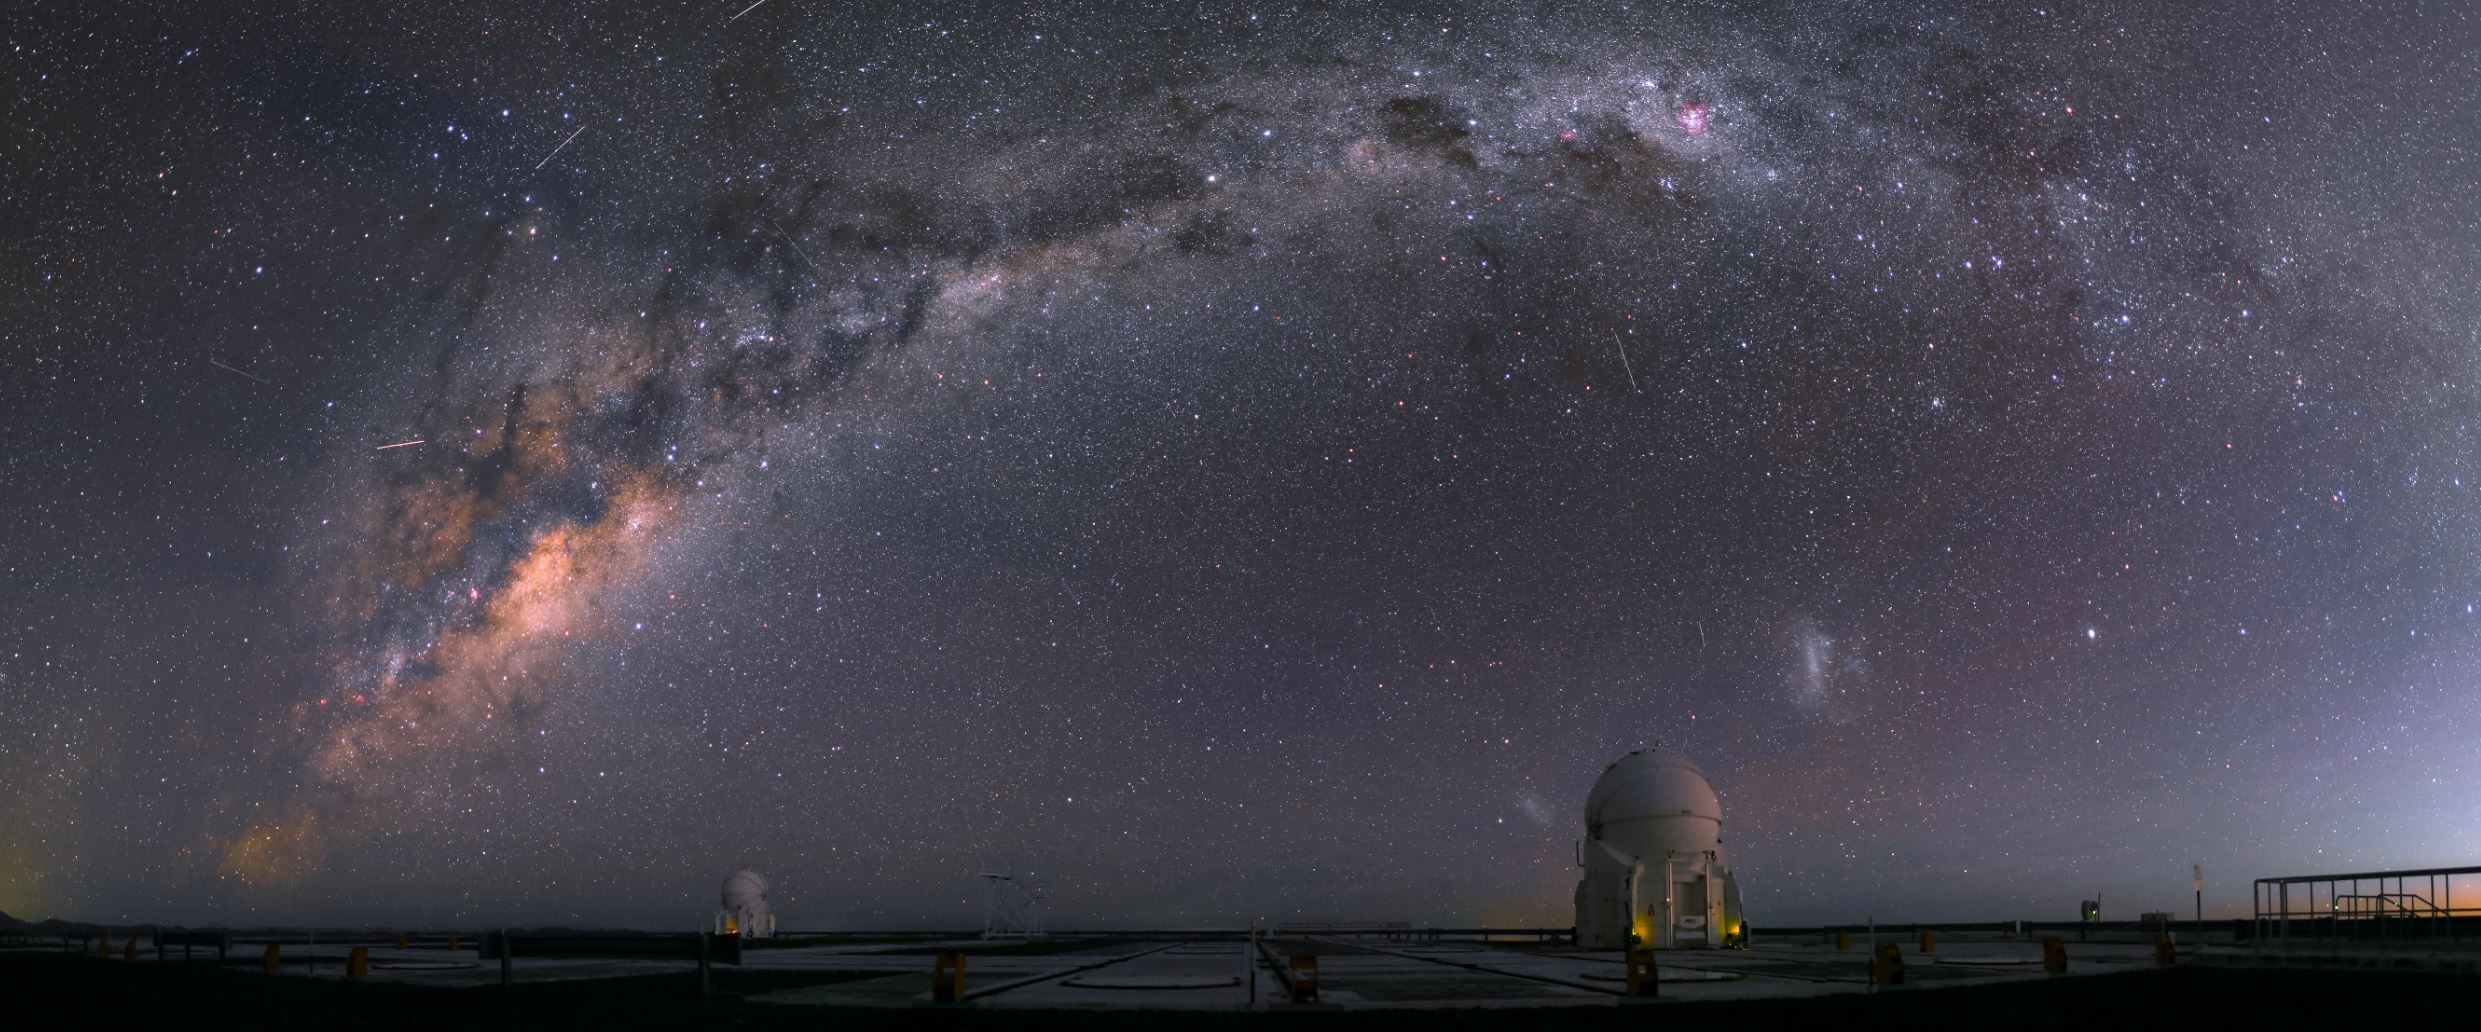 The night sky at the Paranal Observatory, displaying the stunning milky way - Image Credit:  R. Wesson/ESO